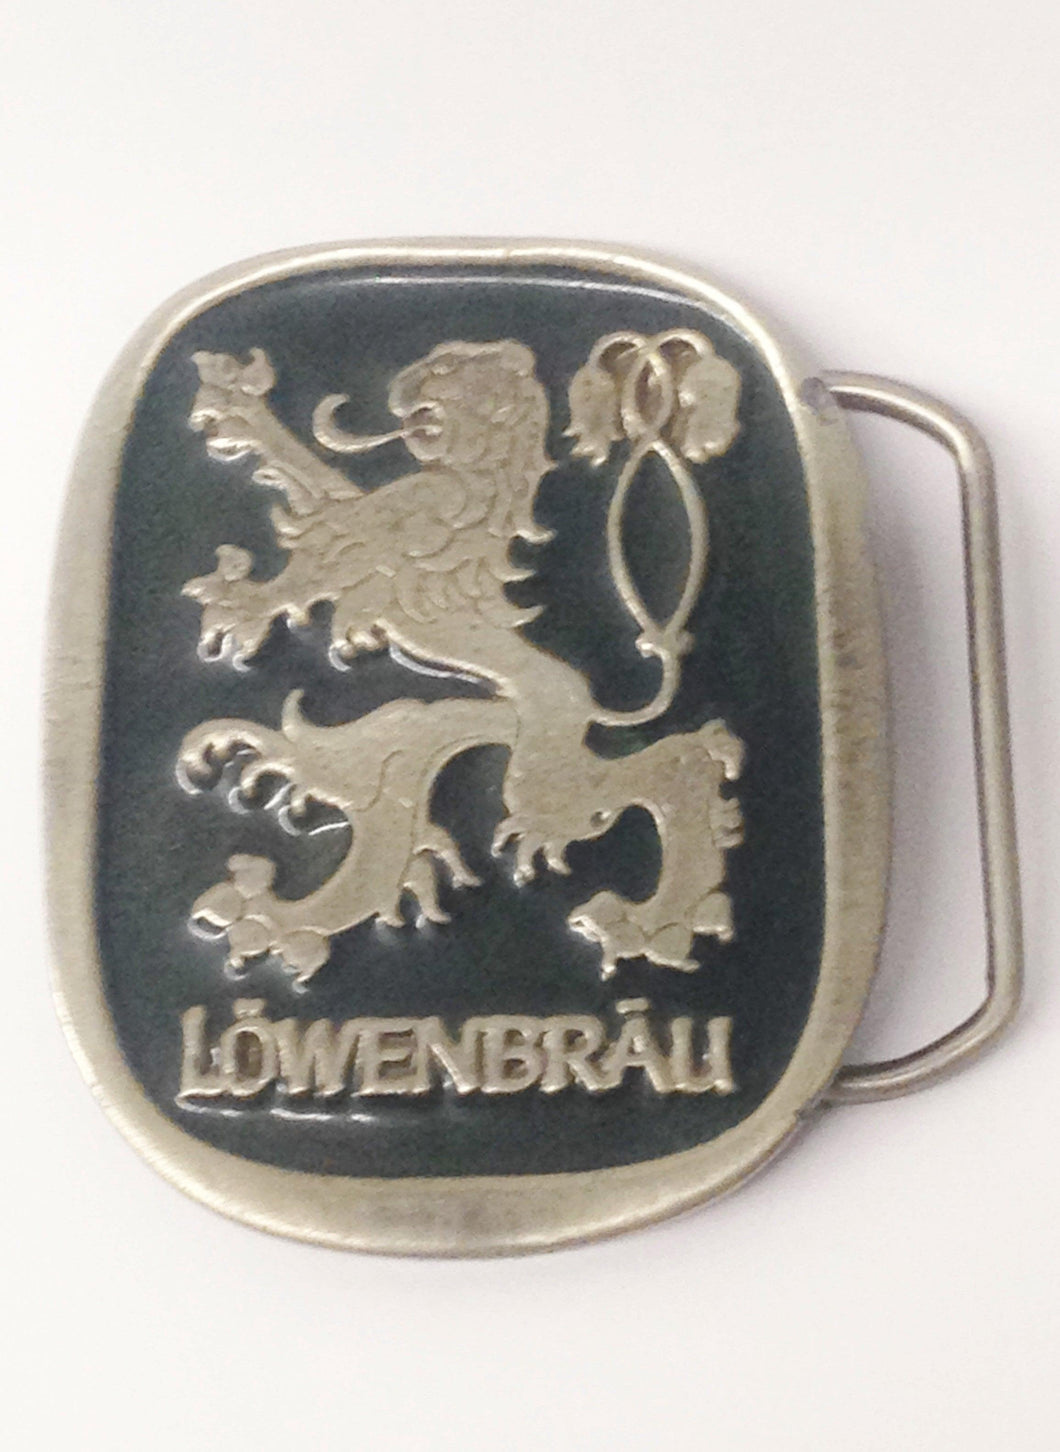 Vintage Lowenbrau Beer Advertising Belt Buckle 2094